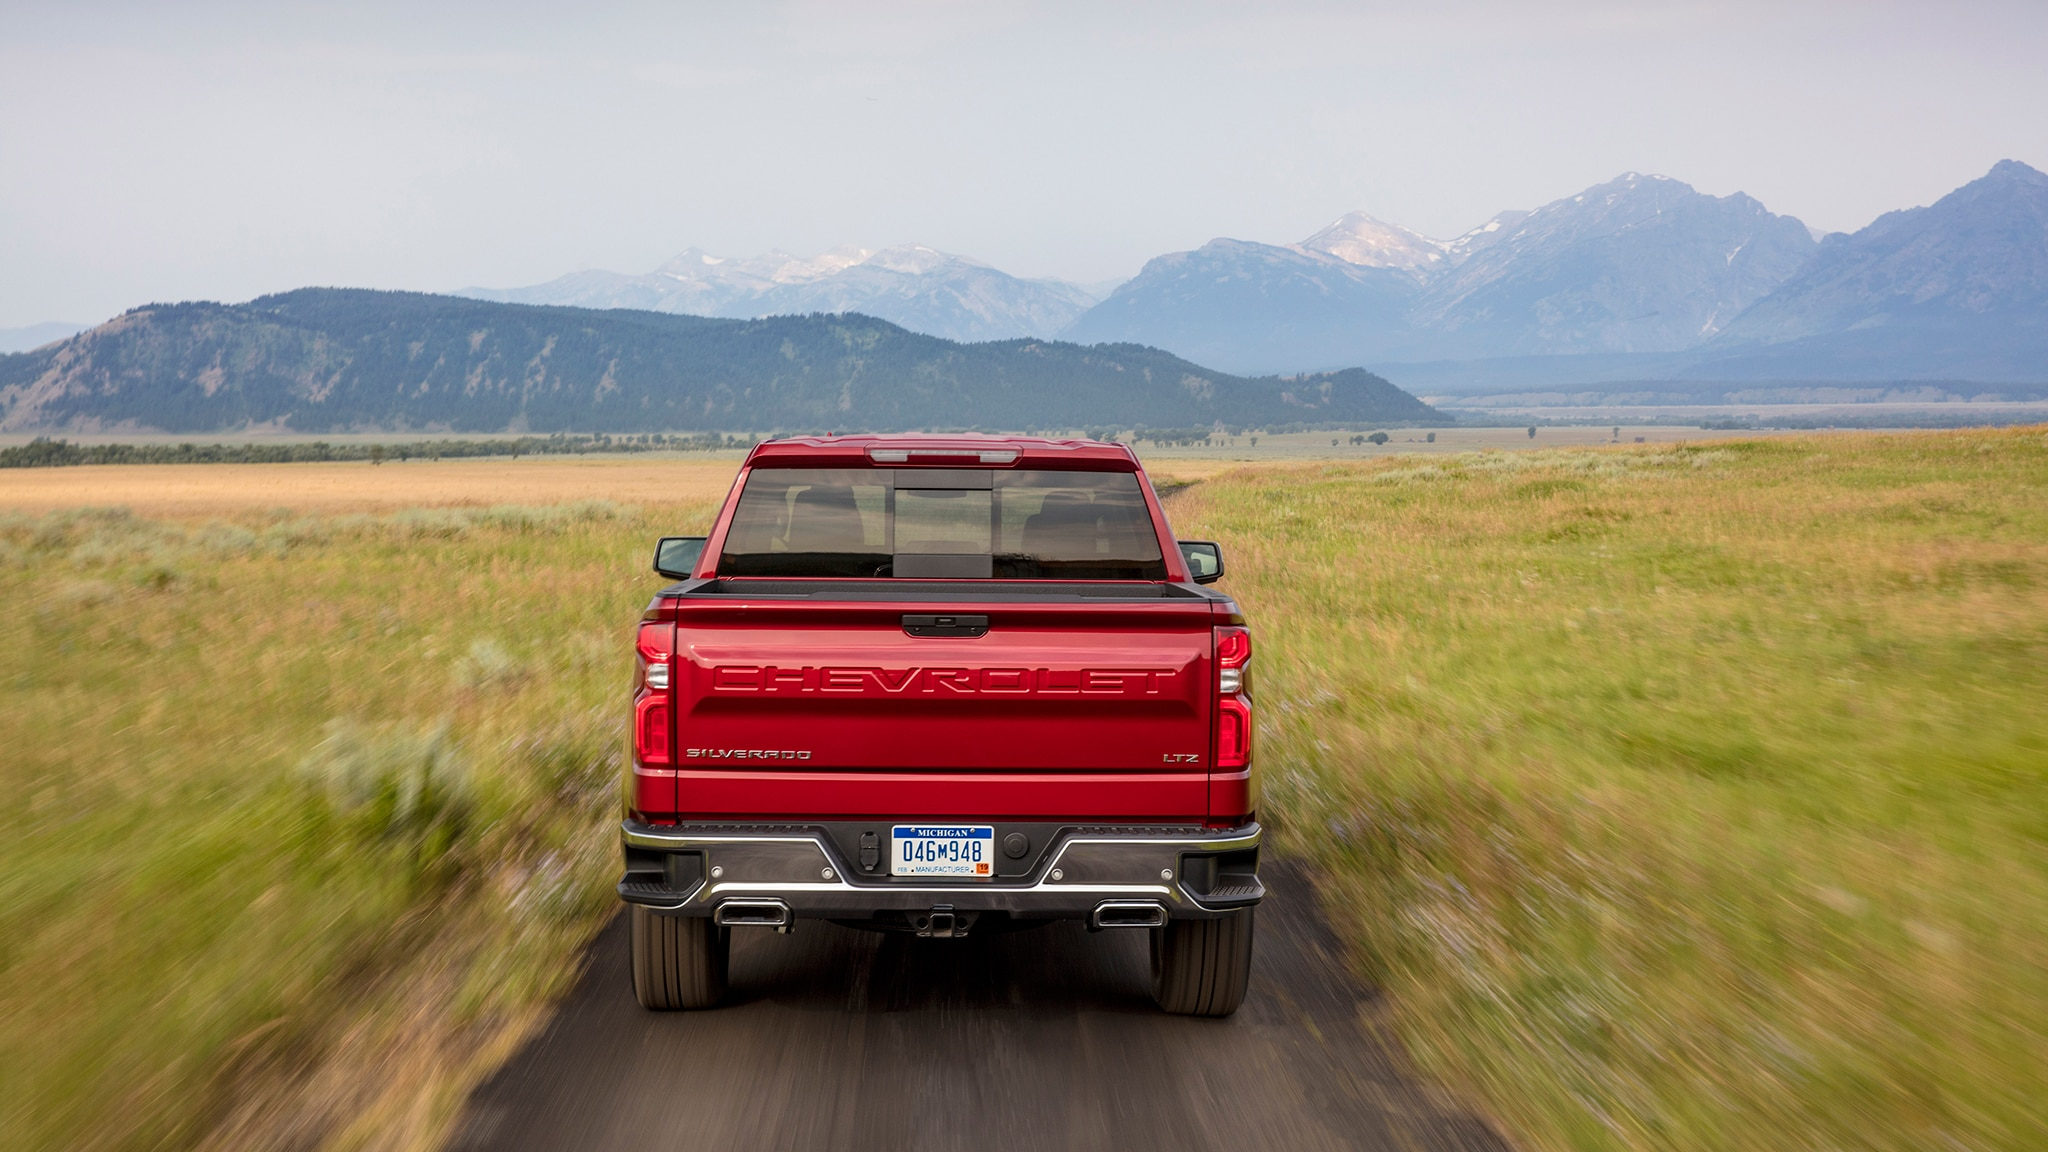 2019 Chevrolet Silverado High Country First Drive Review | Automobile Magazine